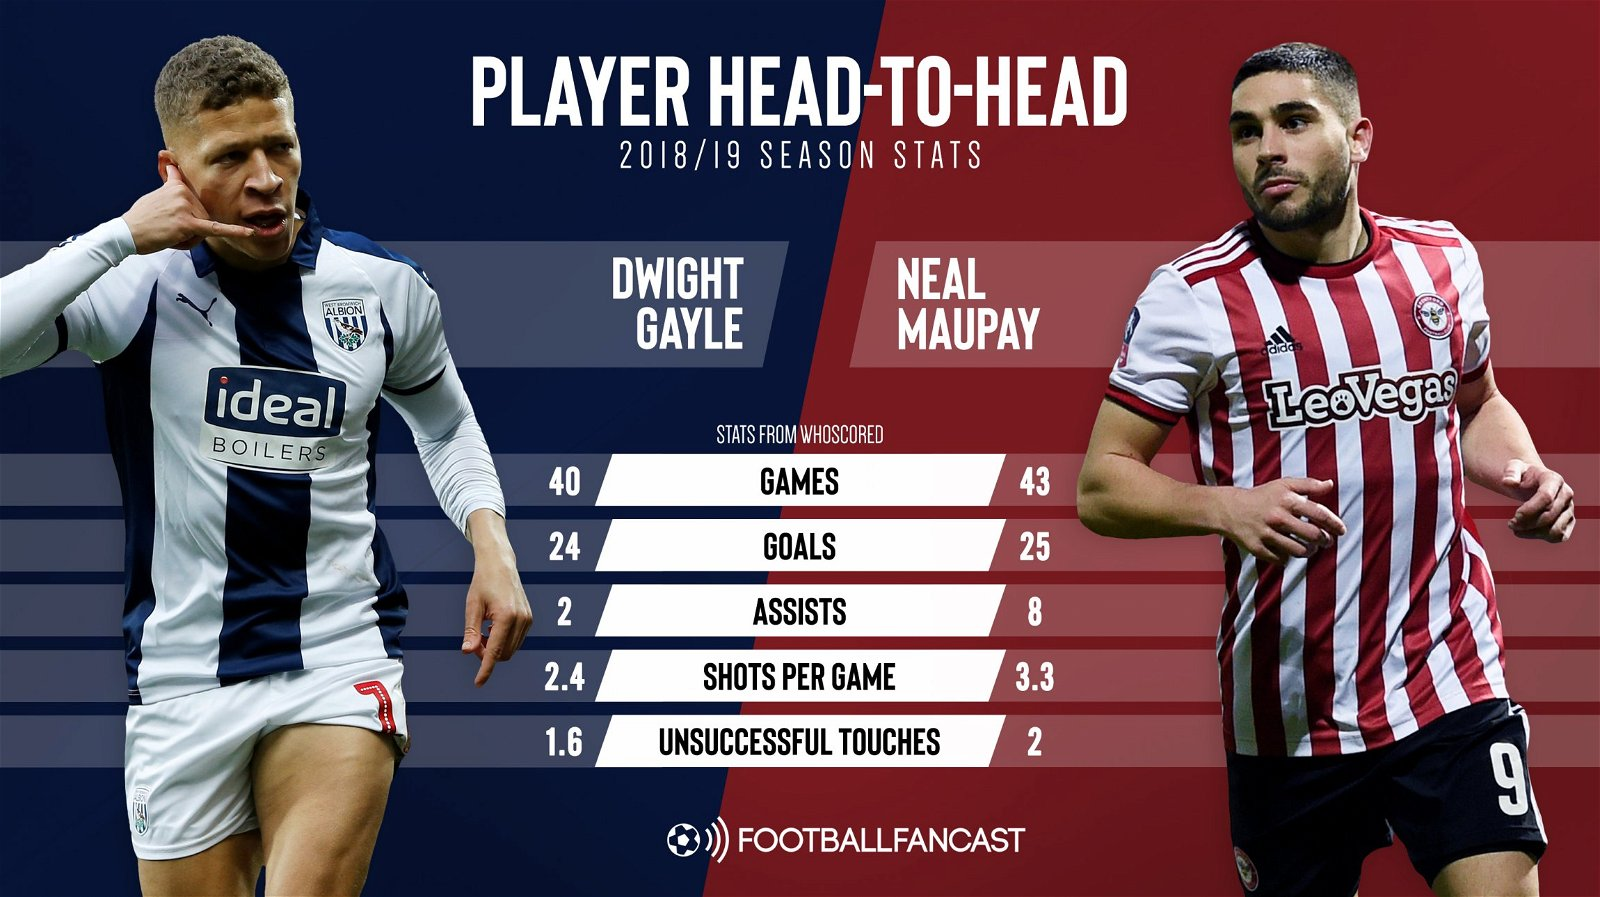 Dwight Gayle and Neal Maupay - West Brom's 25-goal transfer target would be no upgrade on Gayle - opinion